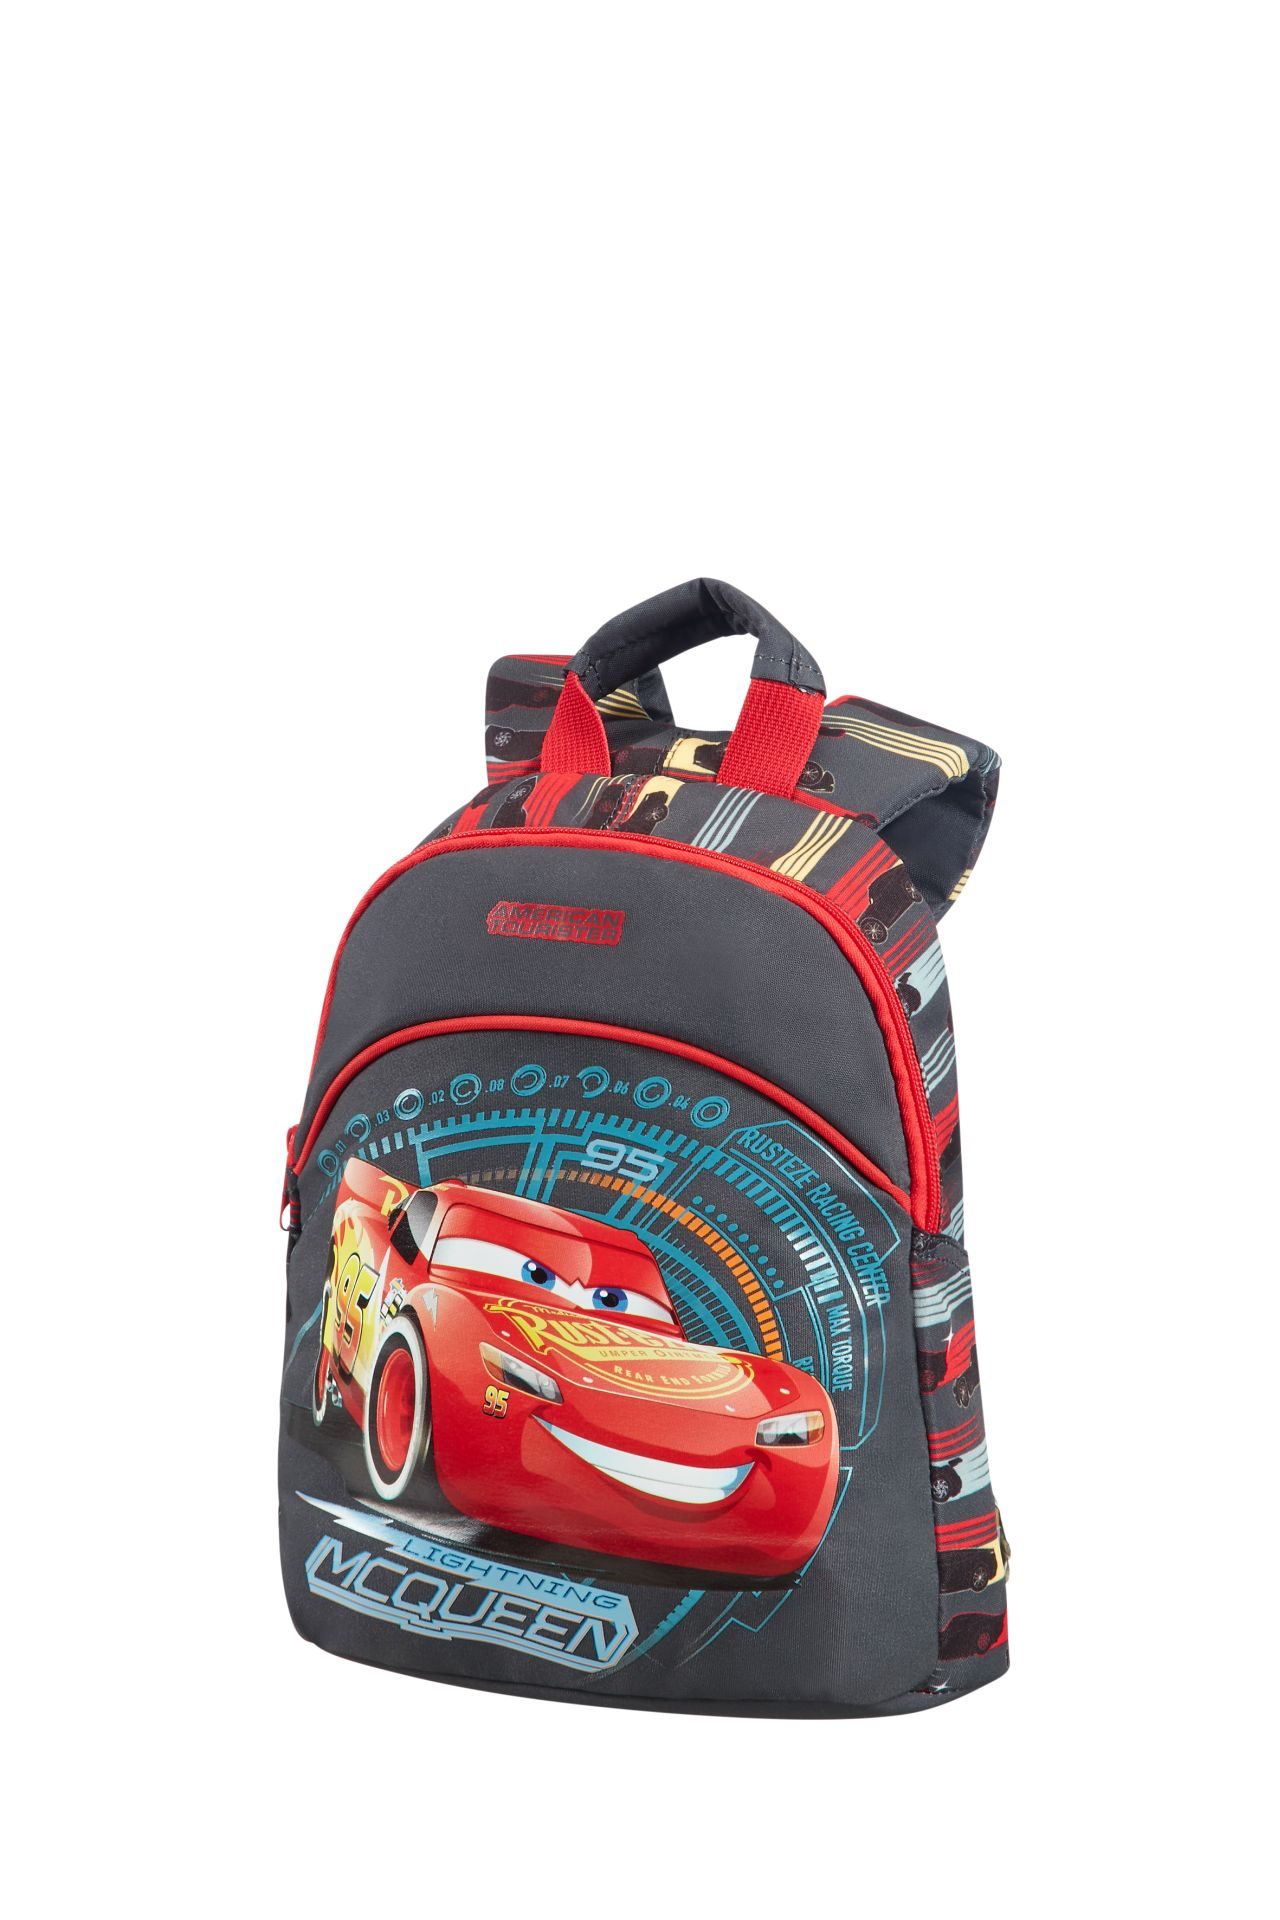 1a9e5c9a7ea American Tourister by Samsonite Disney Cars 3 Backpack S 2018 - large image  1 ...